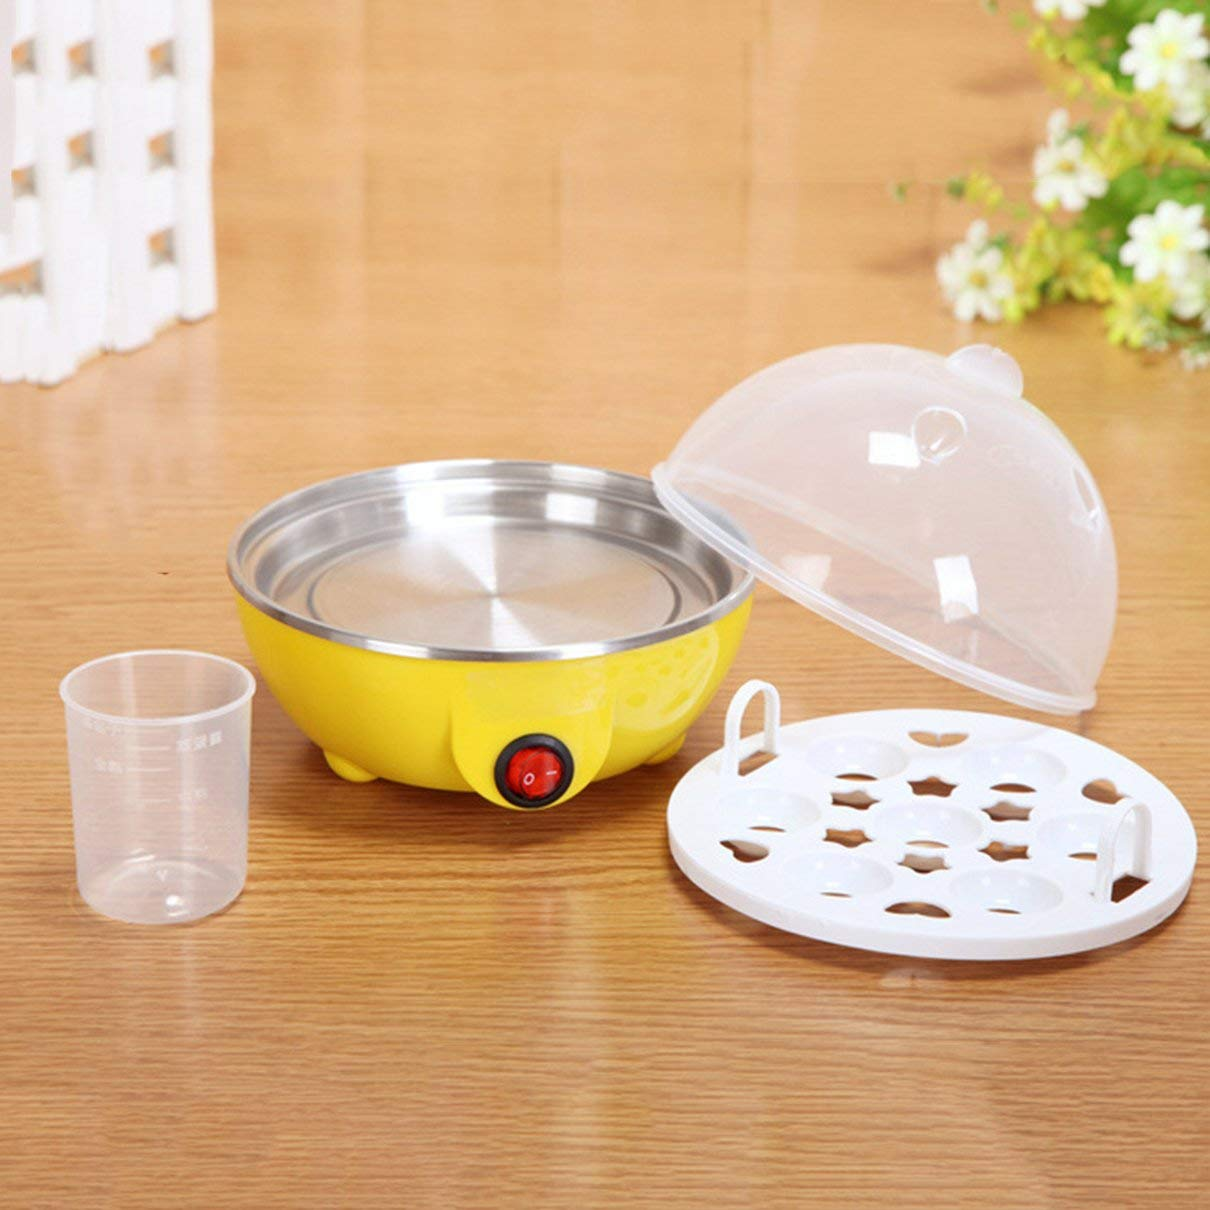 Multi-function Electric Egg Cooker 7 Eggs Capacity Auto-off Fast Egg Boiler Steamer Cooking Tools Kitchen Tools by peppydazi